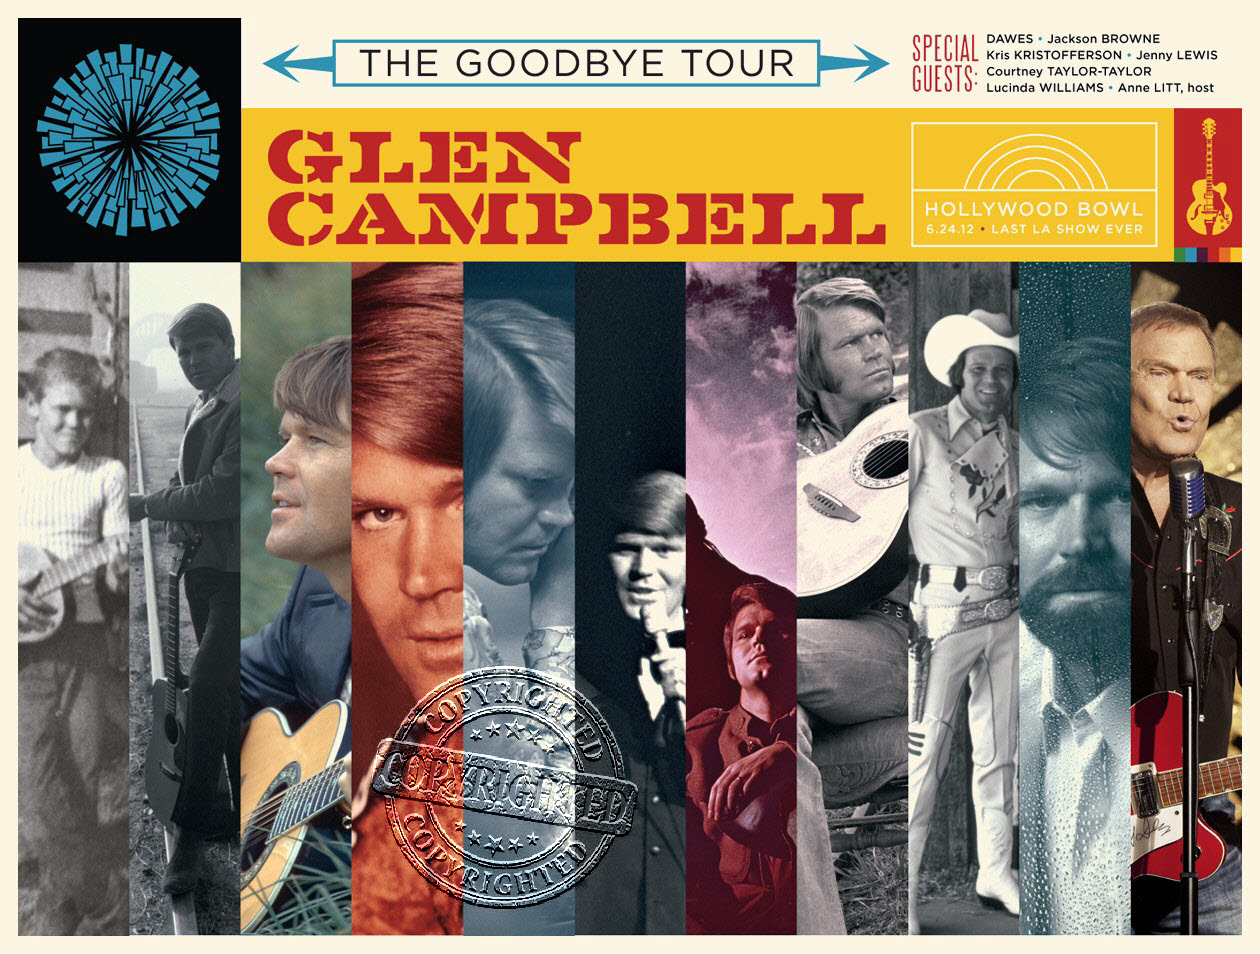 Glen Campbell_Hollywood Bowl Poster_2012_by Kii Arens-gcf.jpg